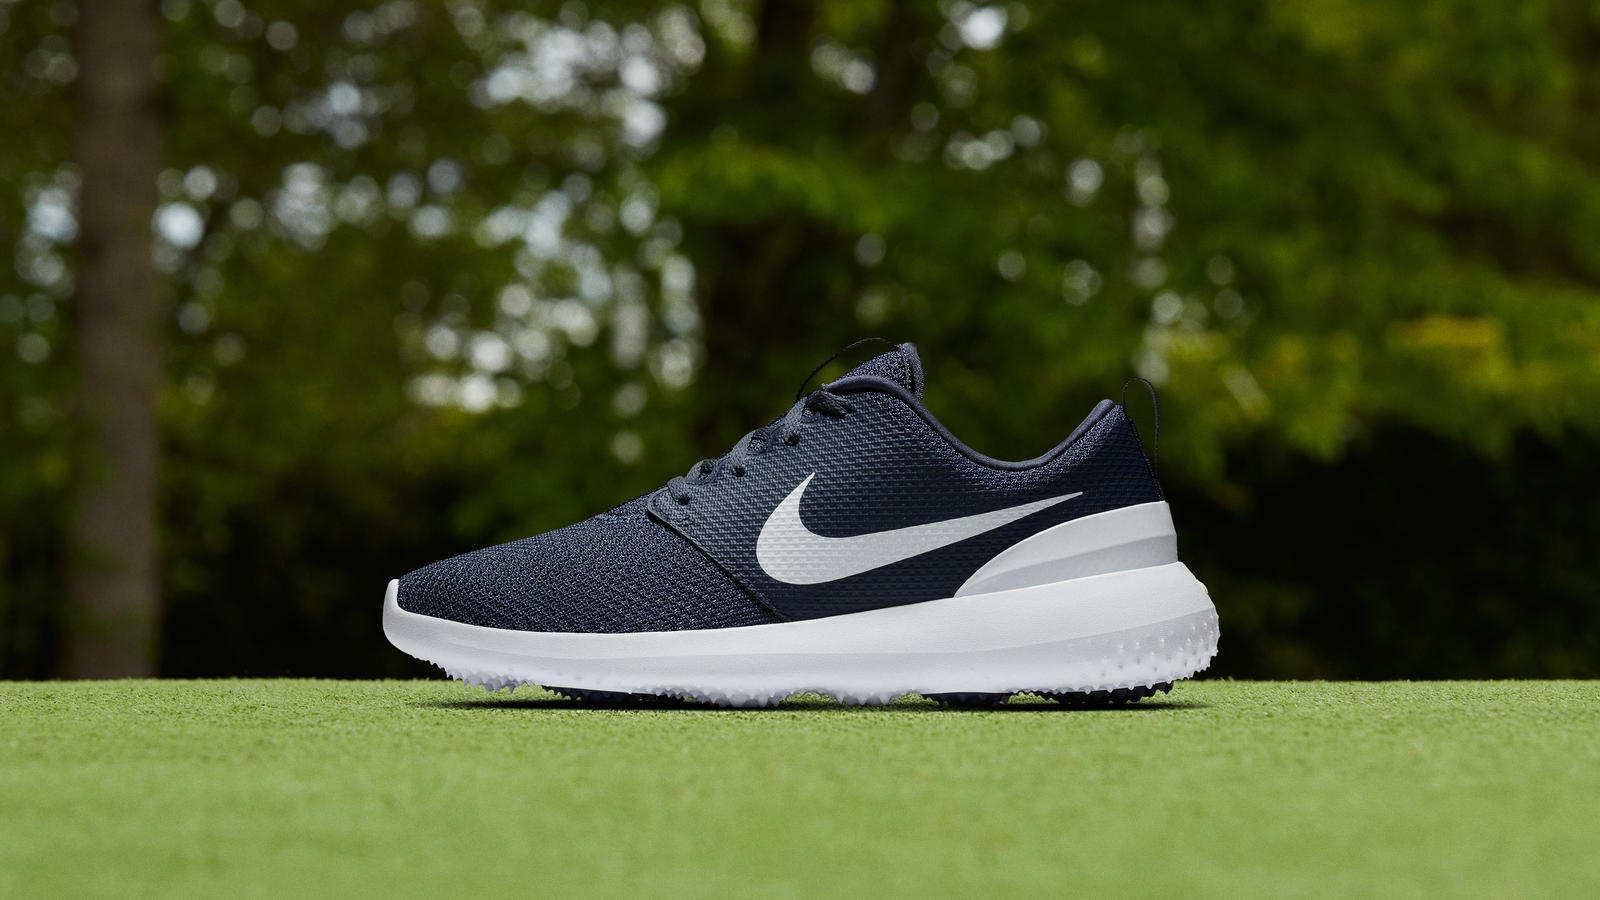 brand new 470b0 e3581 Nike Roshe G Golf Shoe 0